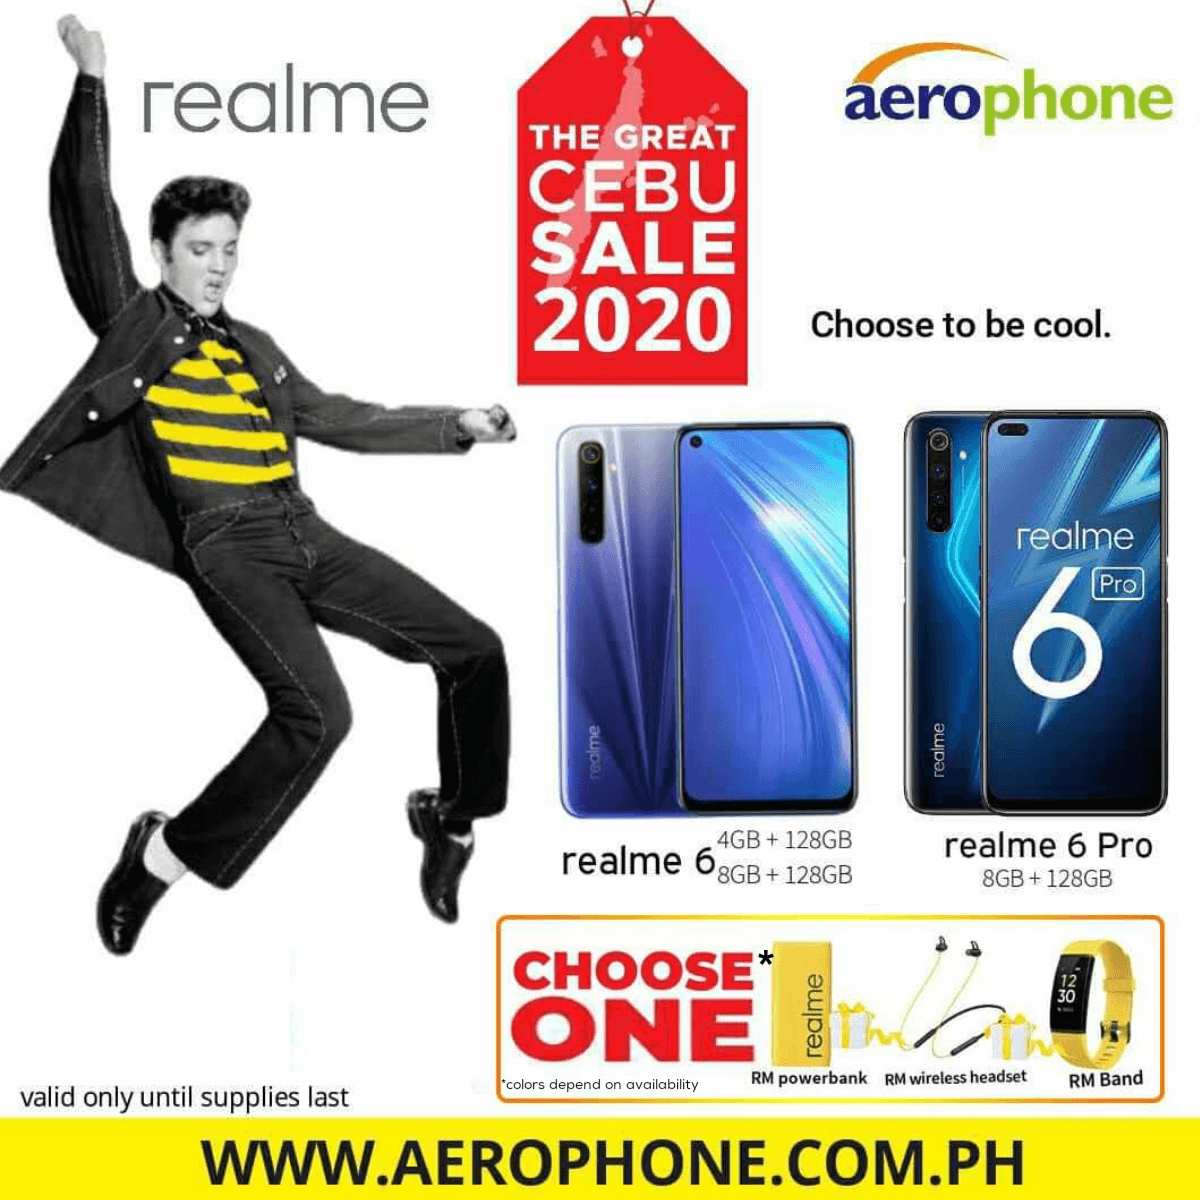 Aerophone offers up to 50% off on gadgets, freebies